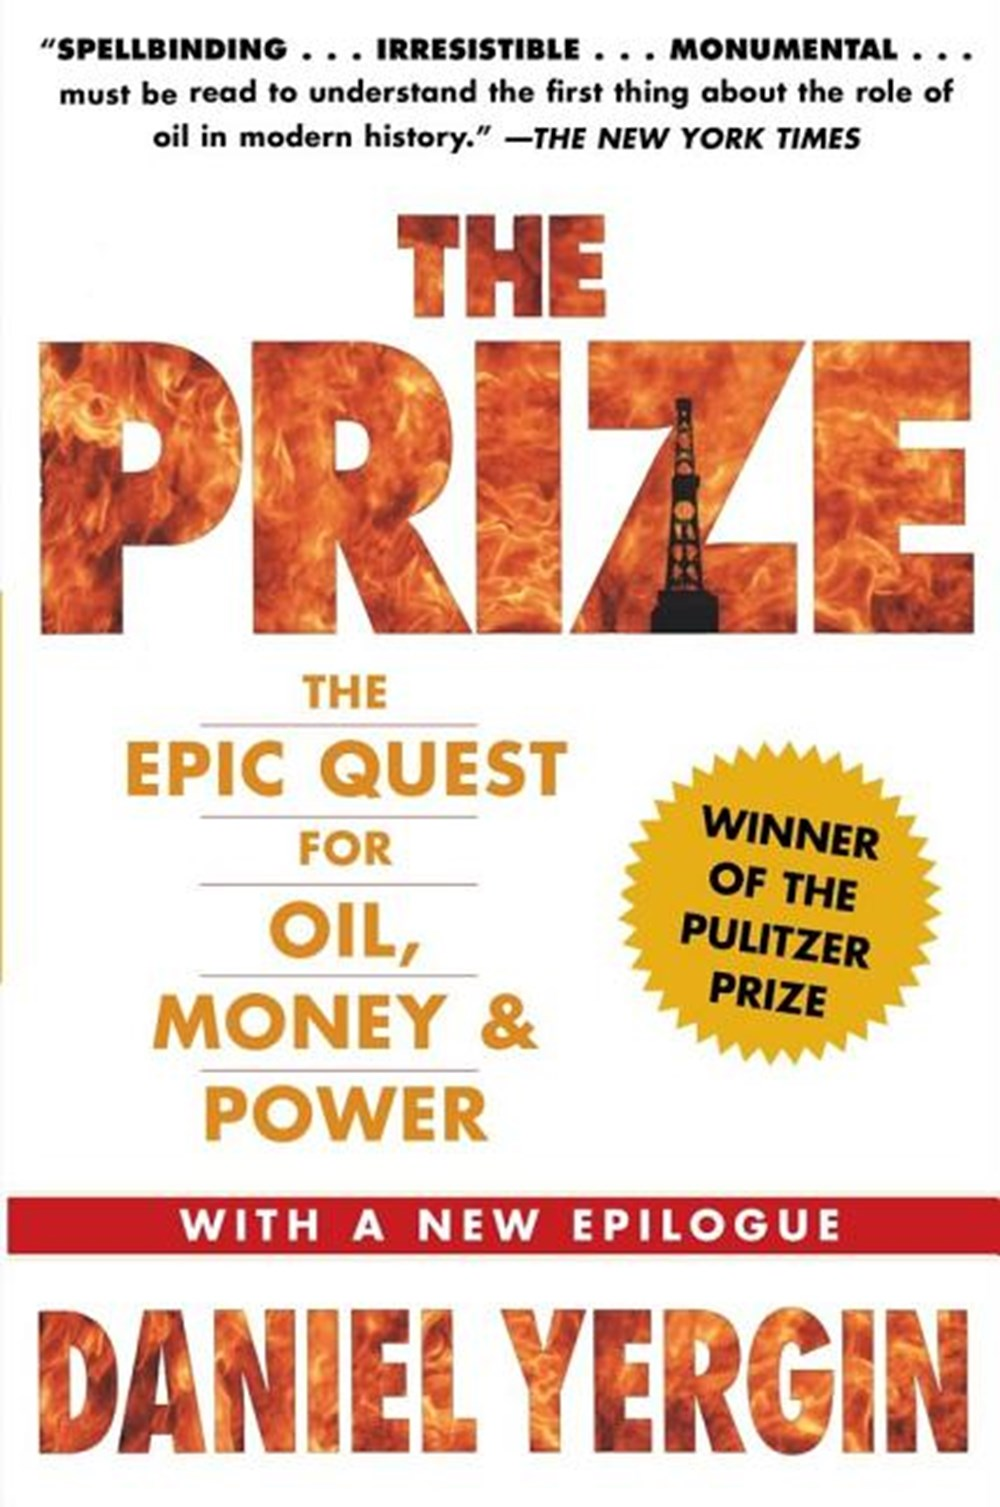 Prize The Epic Quest for Oil, Money & Power (Reissue)